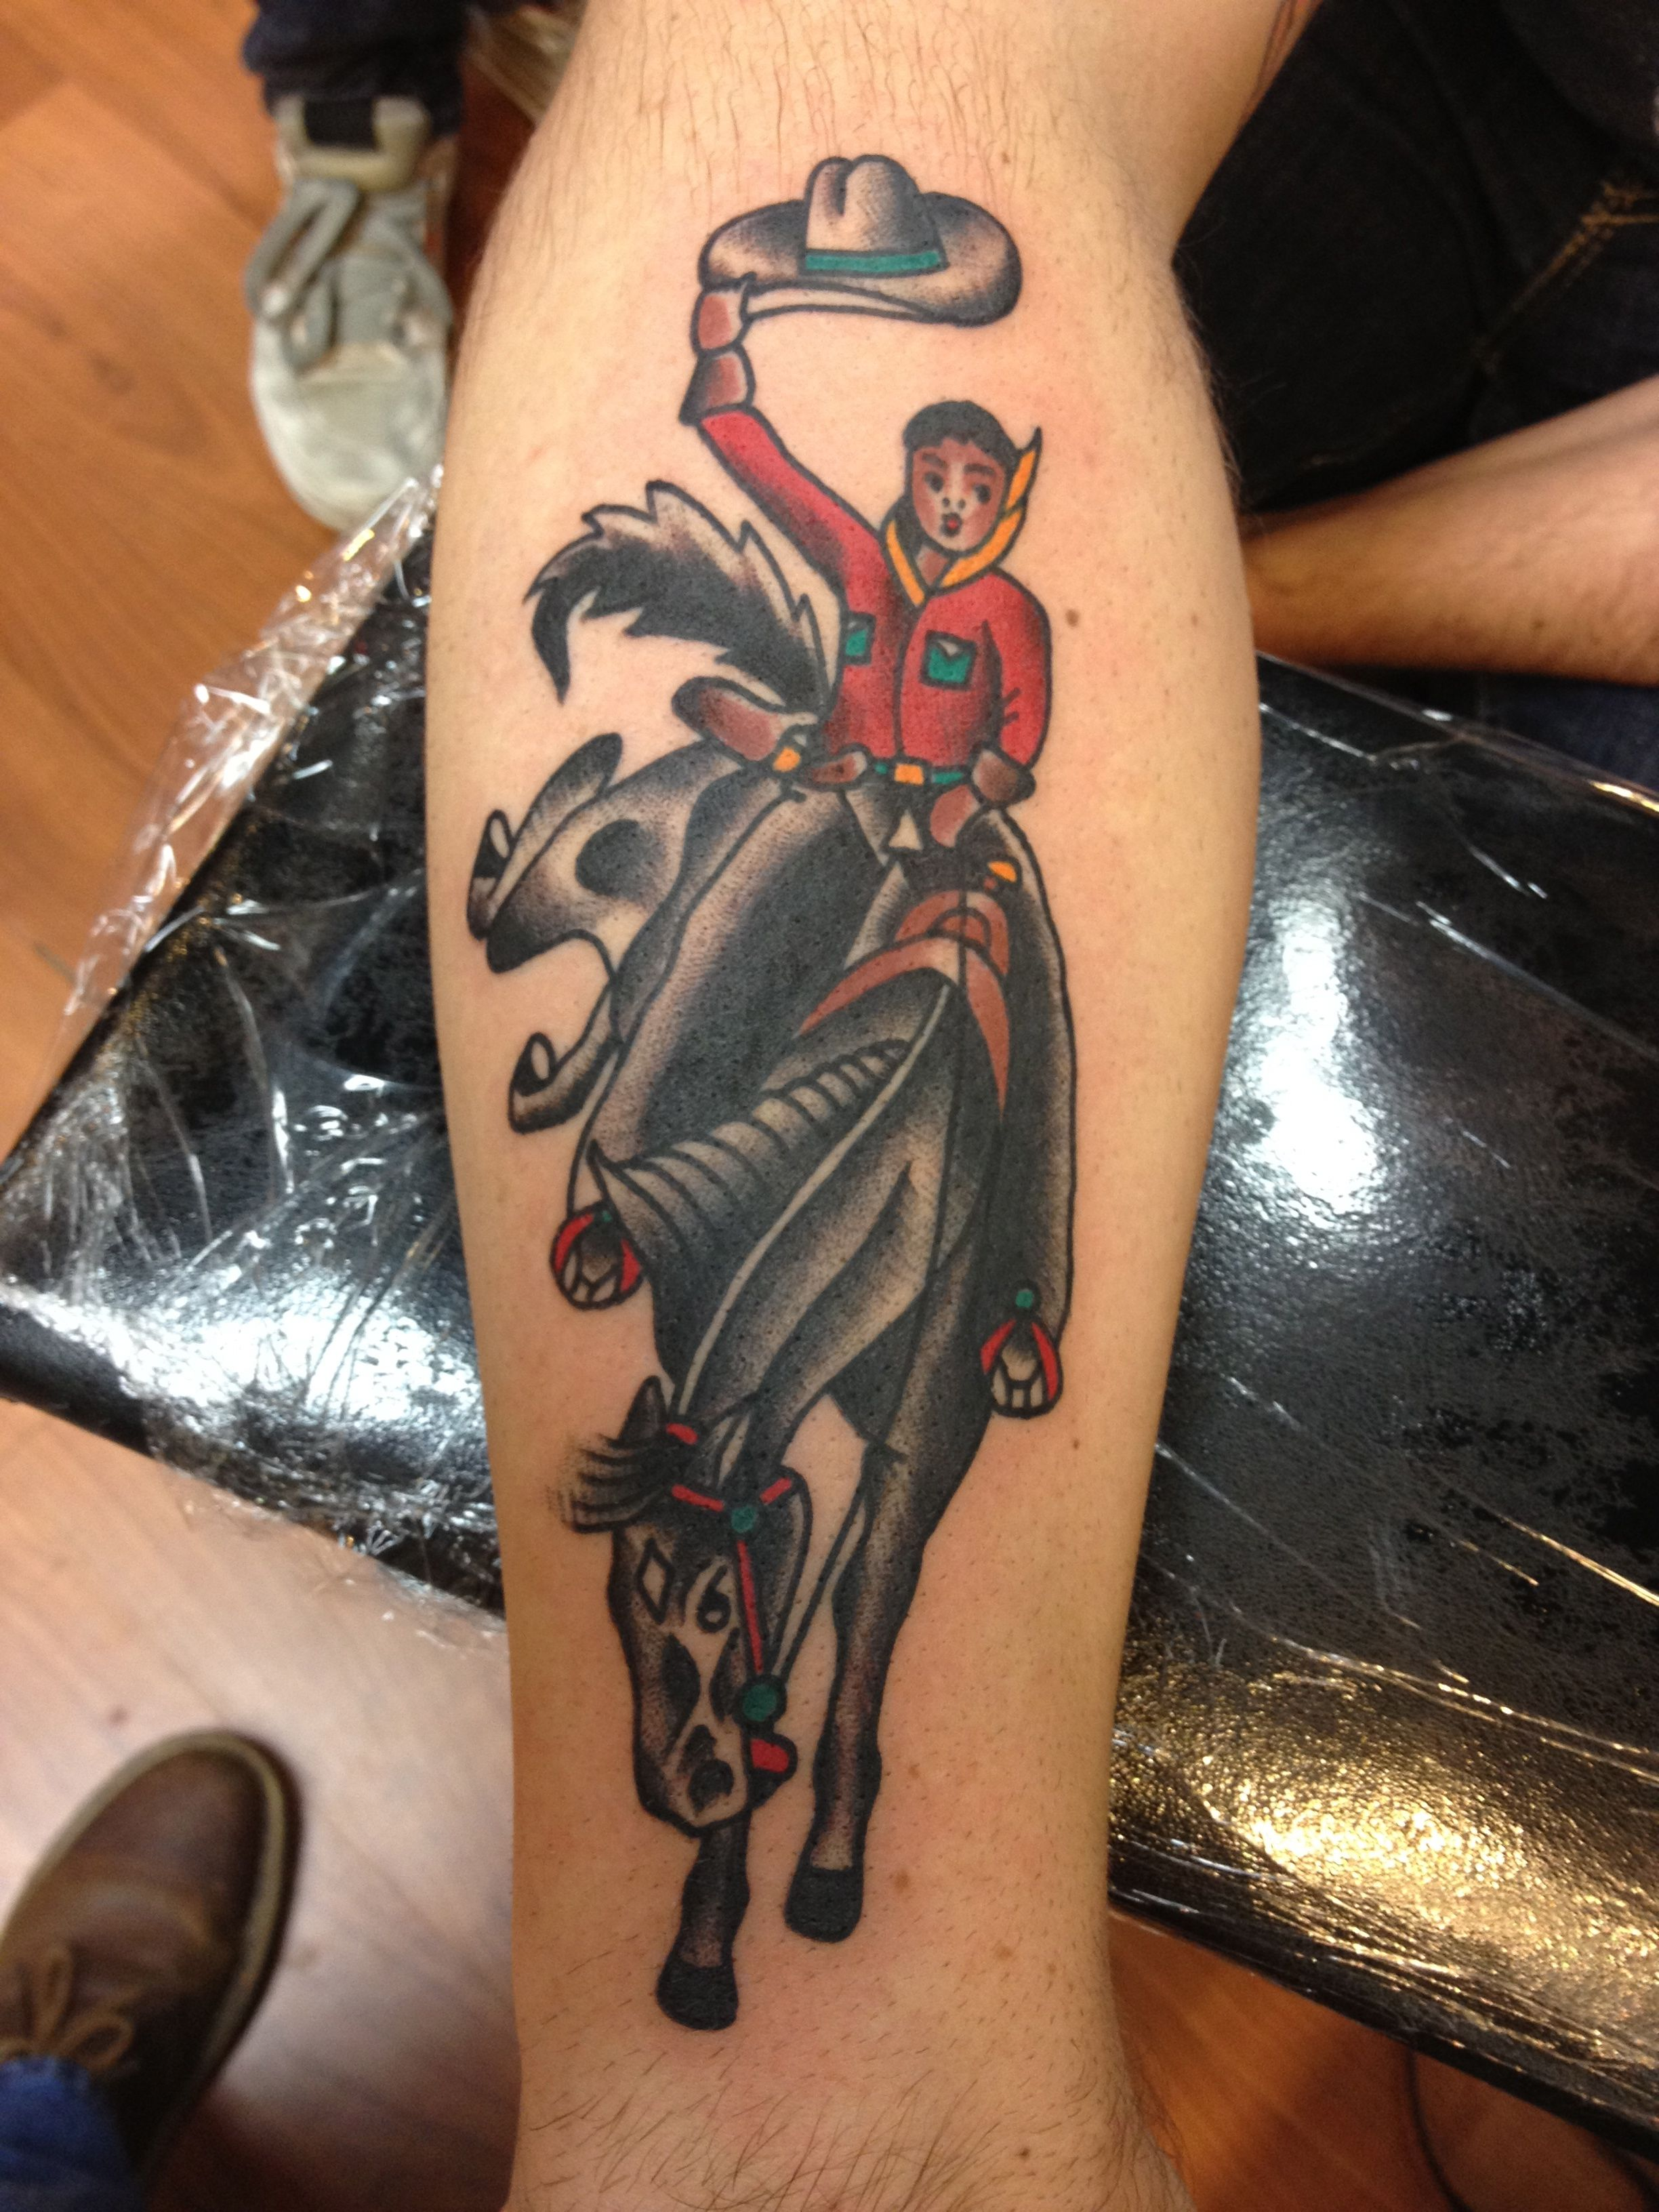 797f0299fe4fd Traditional Cowboy Tattoo | Tattoos by Krooked Ken | Cowboy tattoos ...